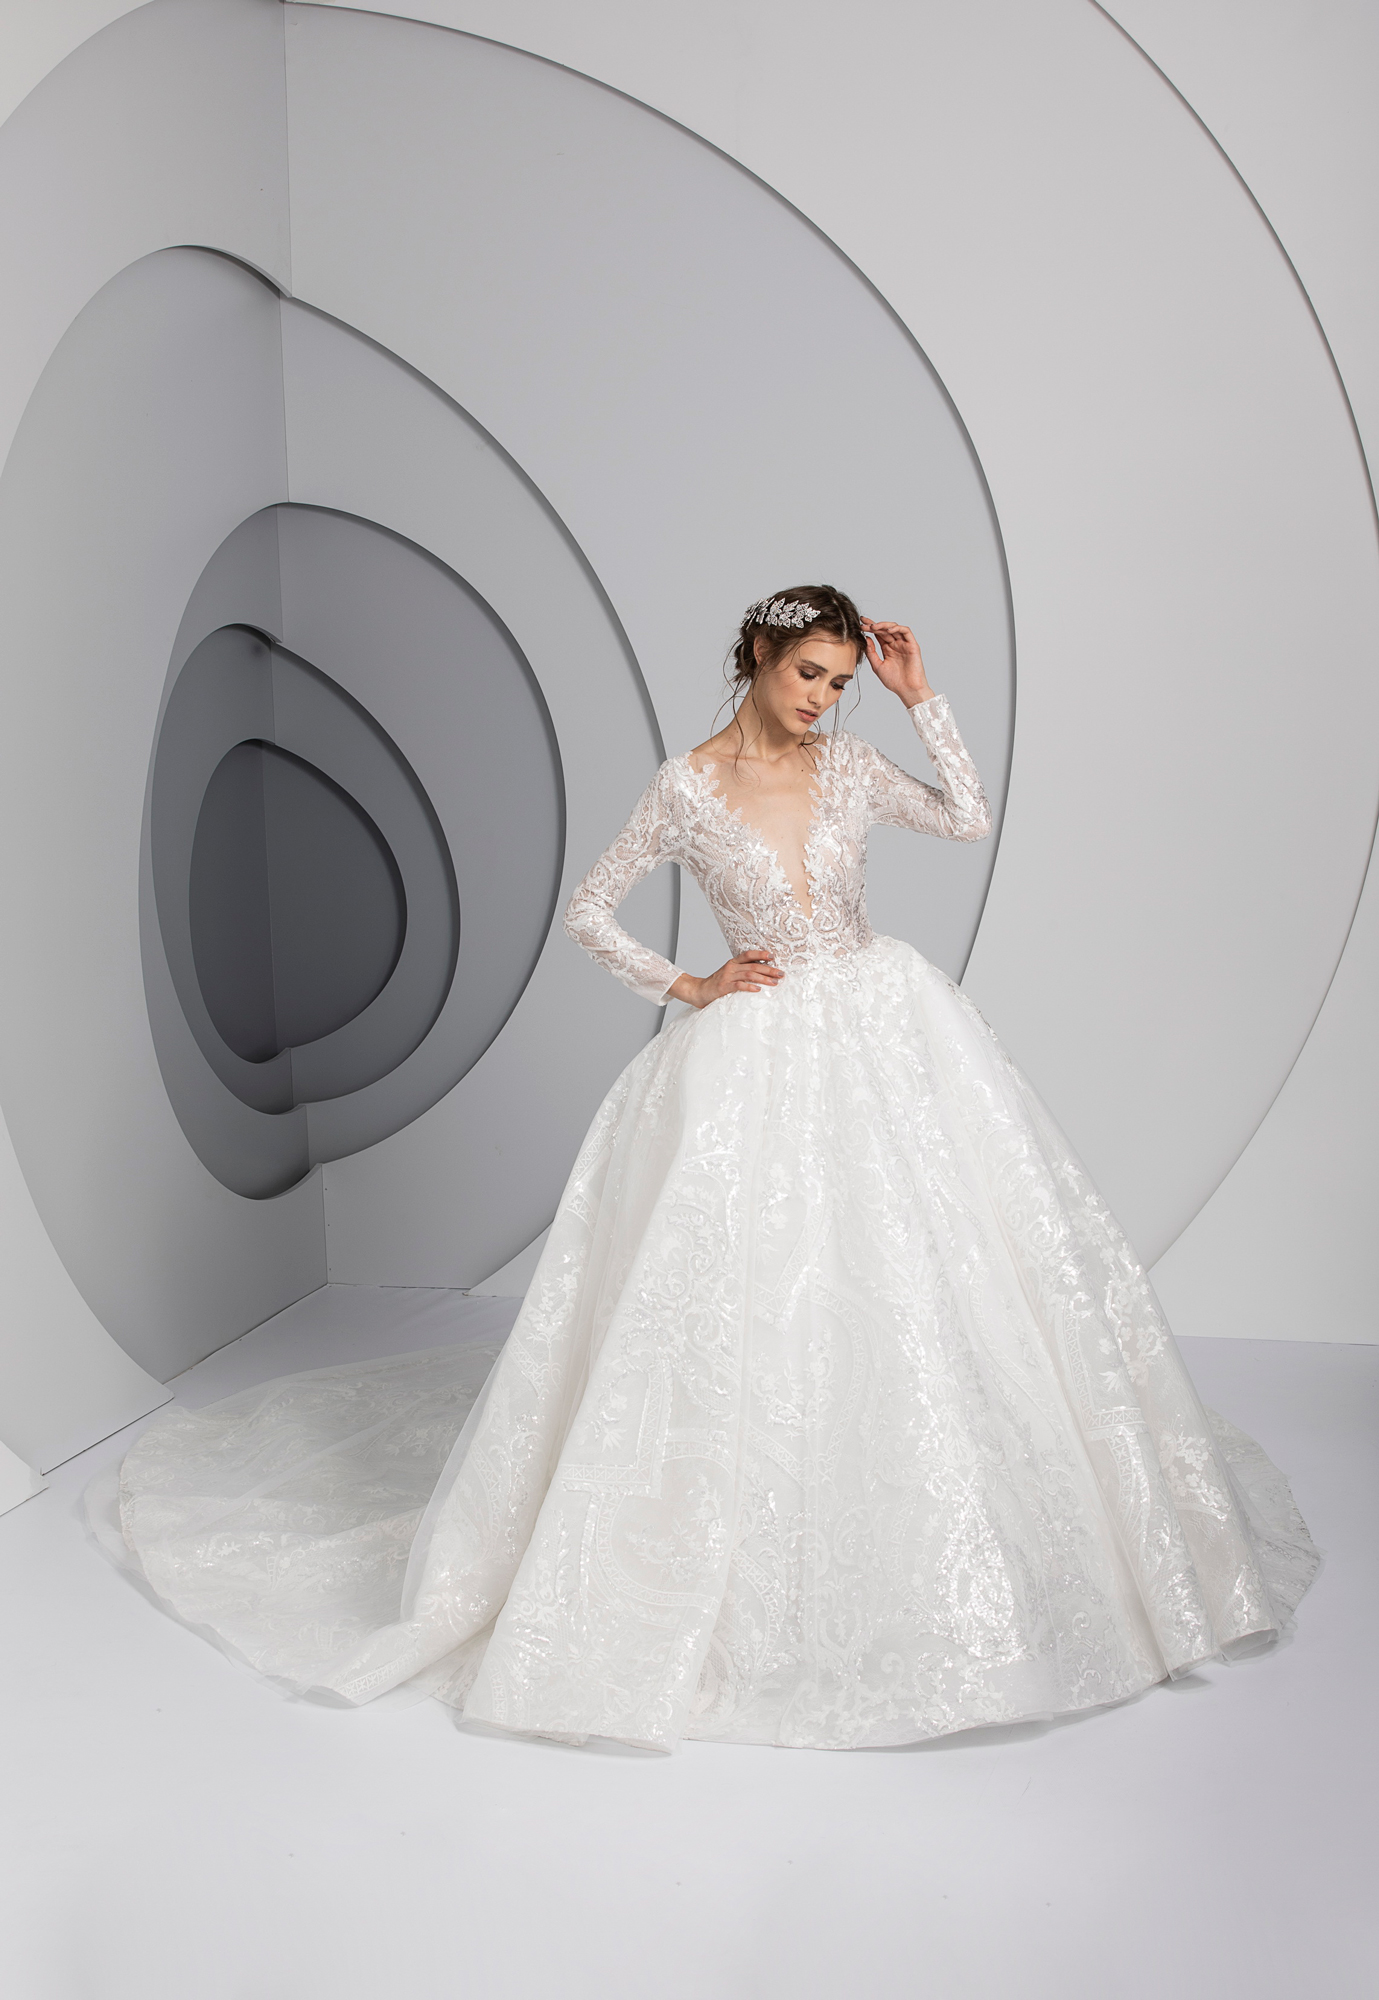 Swirl by Tony Ward from the La Mariee Collection